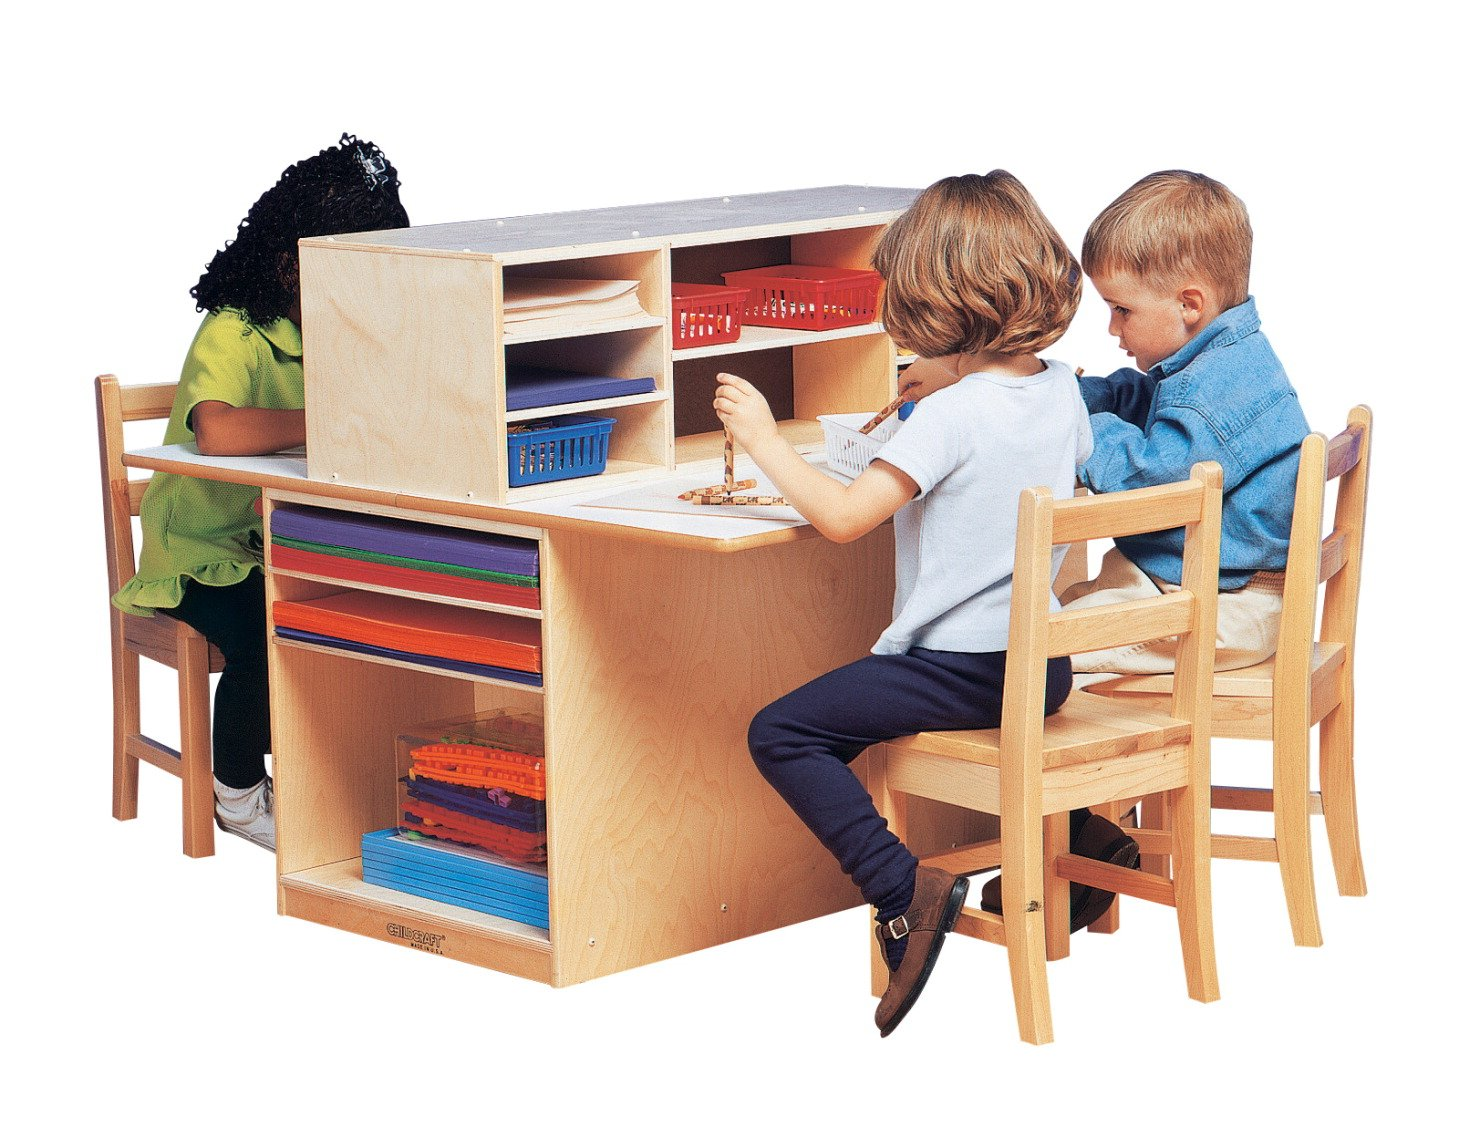 Childcraft 071978 Double-Sided Junior Writing Center, 40-3/4'' x 32'' x 36-1/4'', Natural Wood Tone by Childcraft